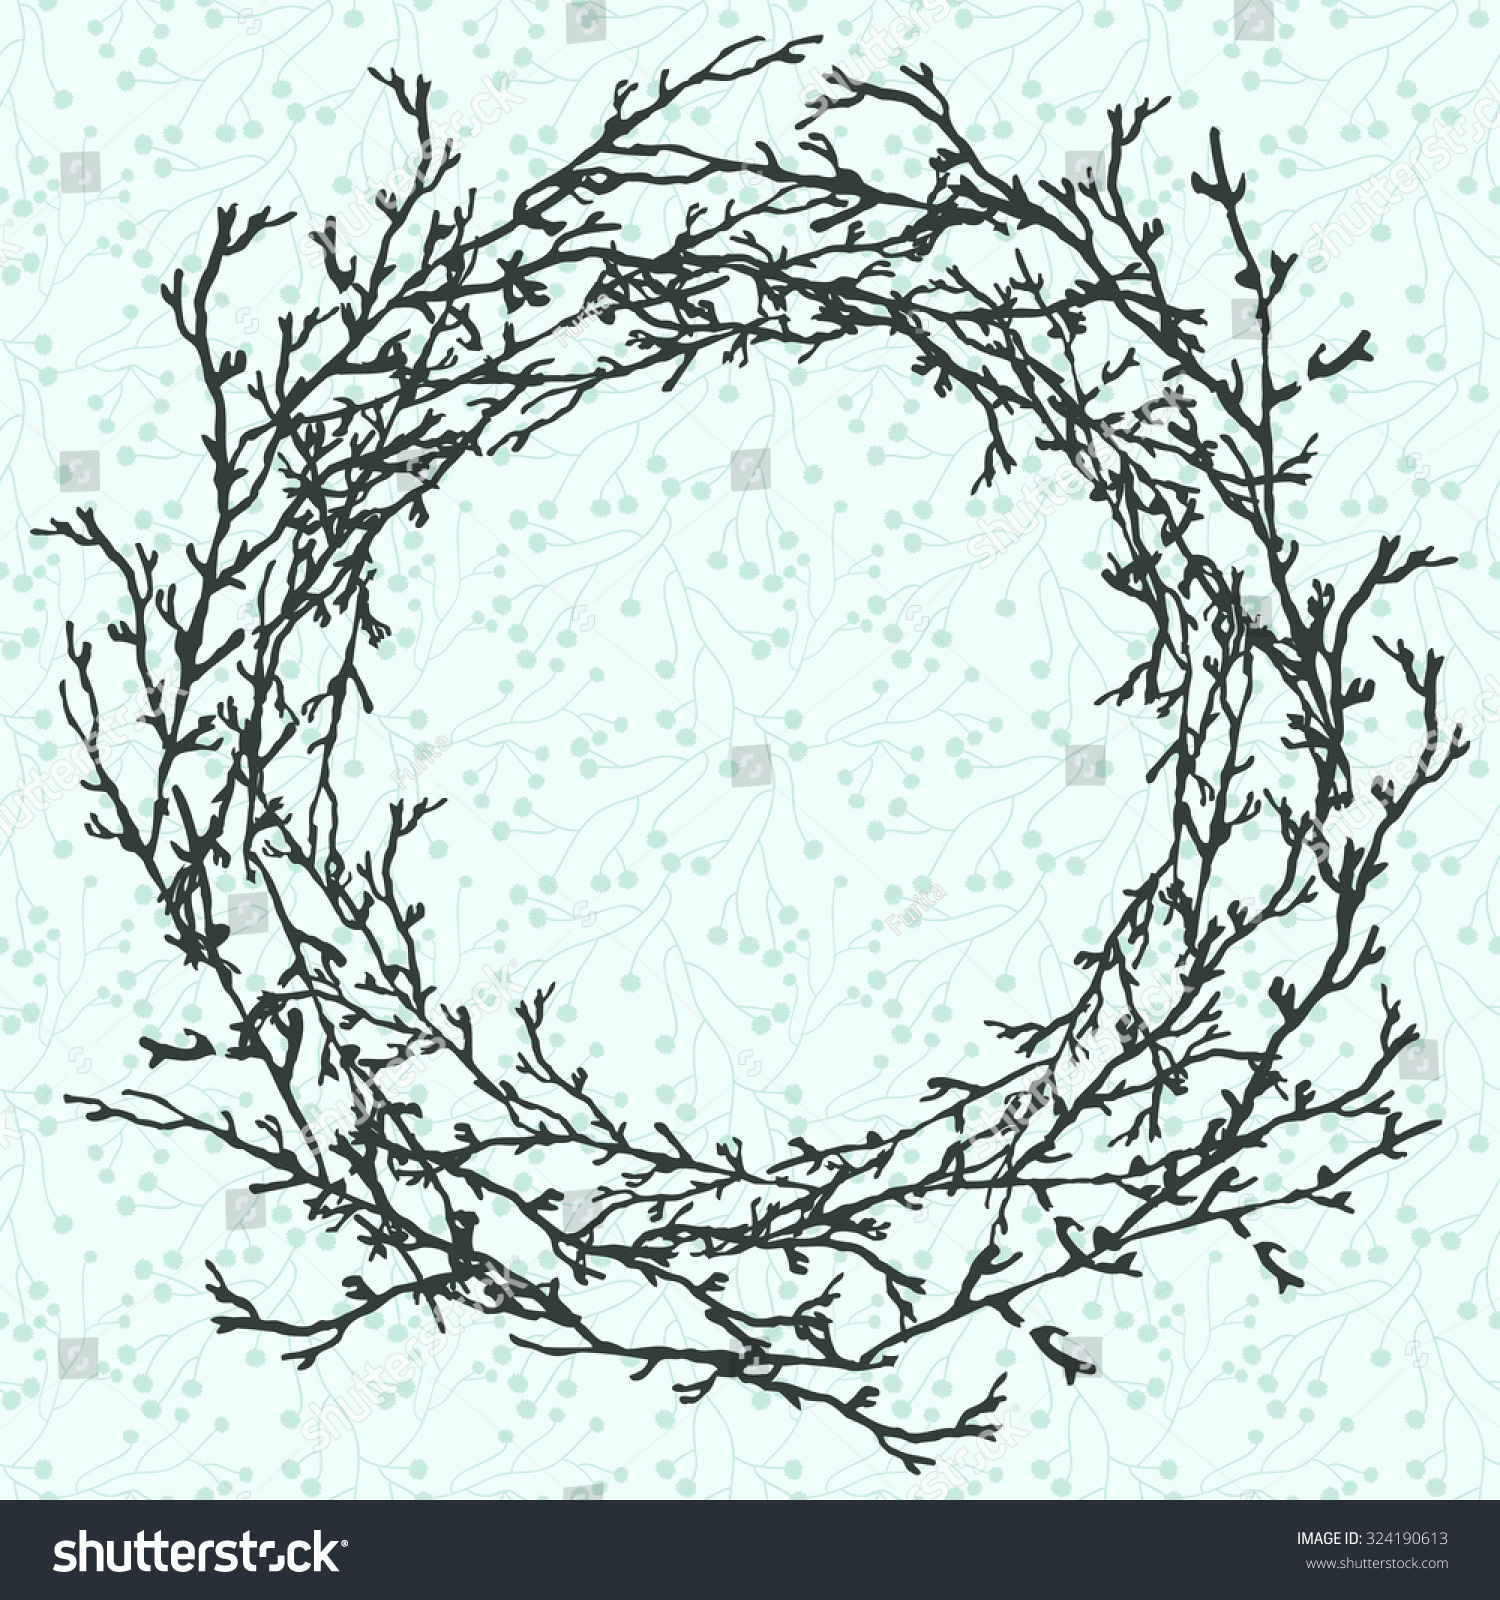 Round frame with decorative branch vector illustration stock - Vector Illustration Of Wreath Frame Circle Of Branches Twigs Hand Drawn Elements